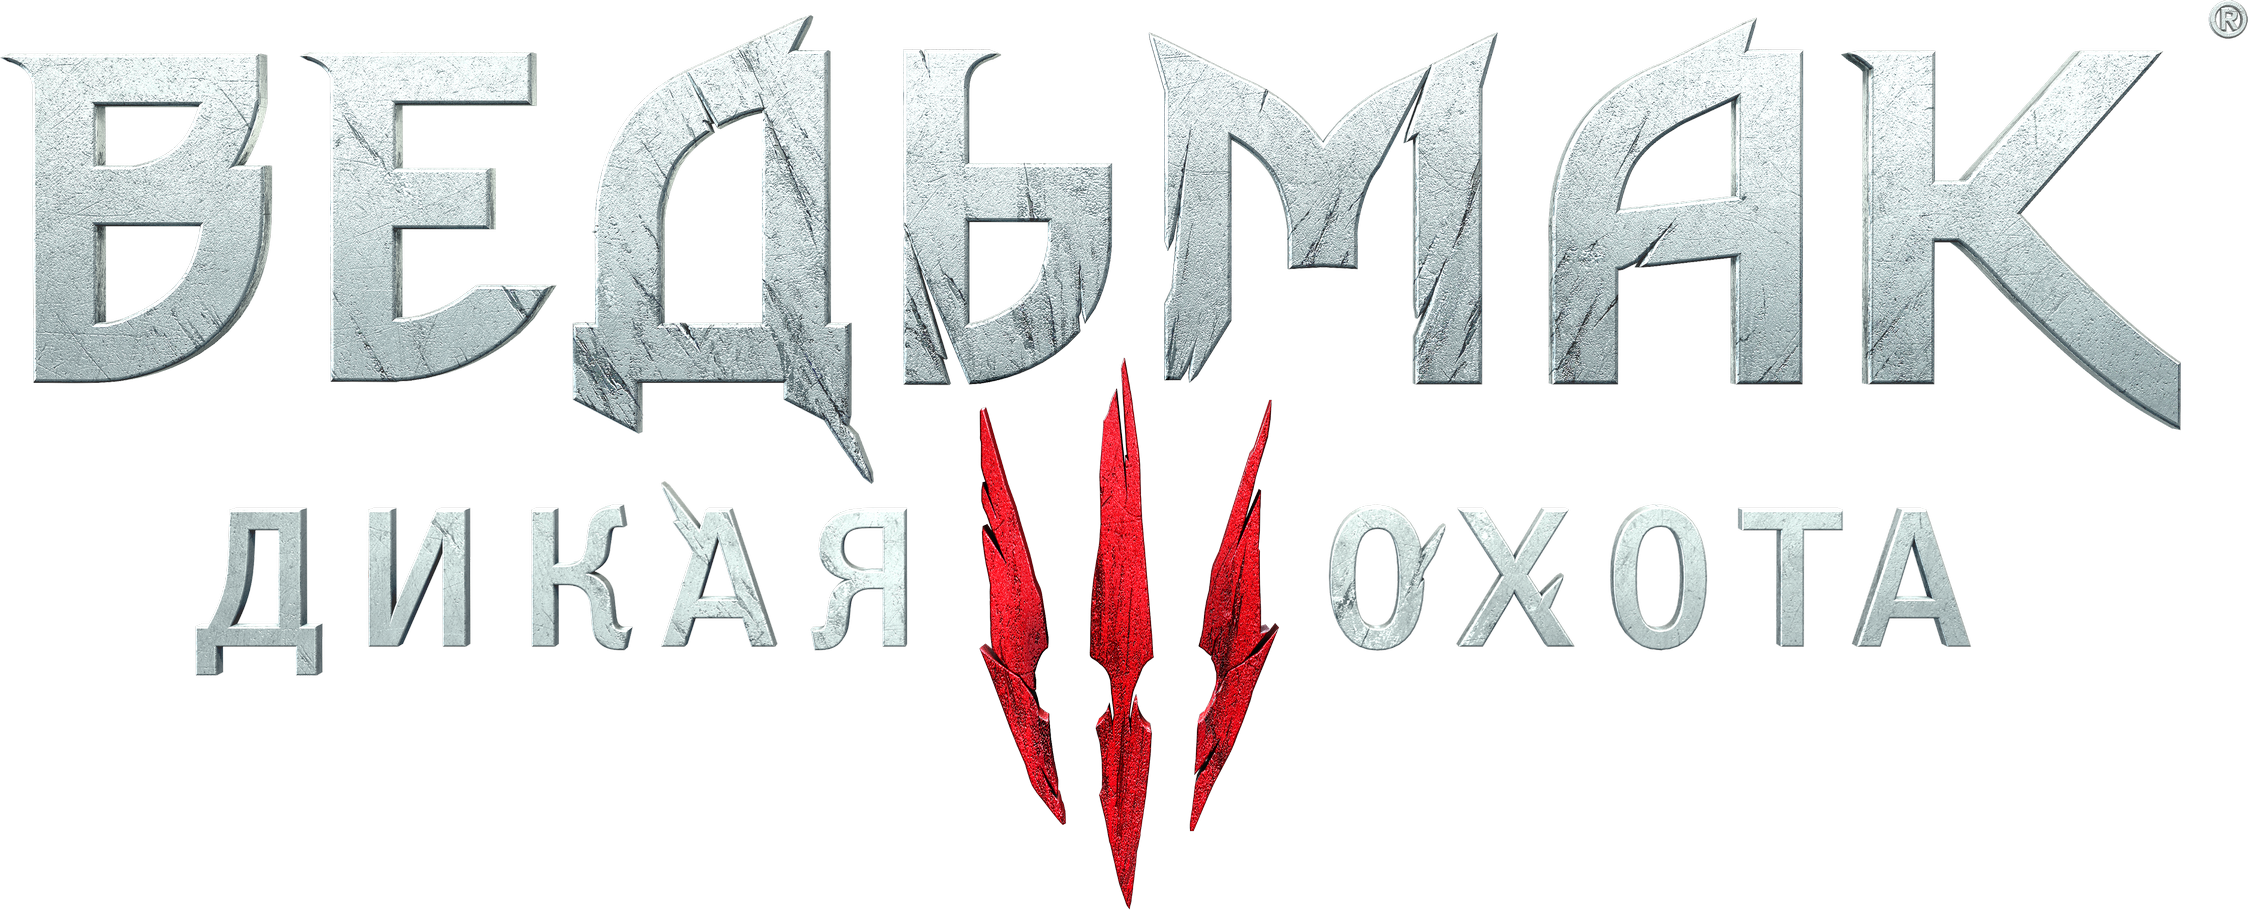 The Witcher 3 Logo Png Image Png Images Logo Icons The Witcher